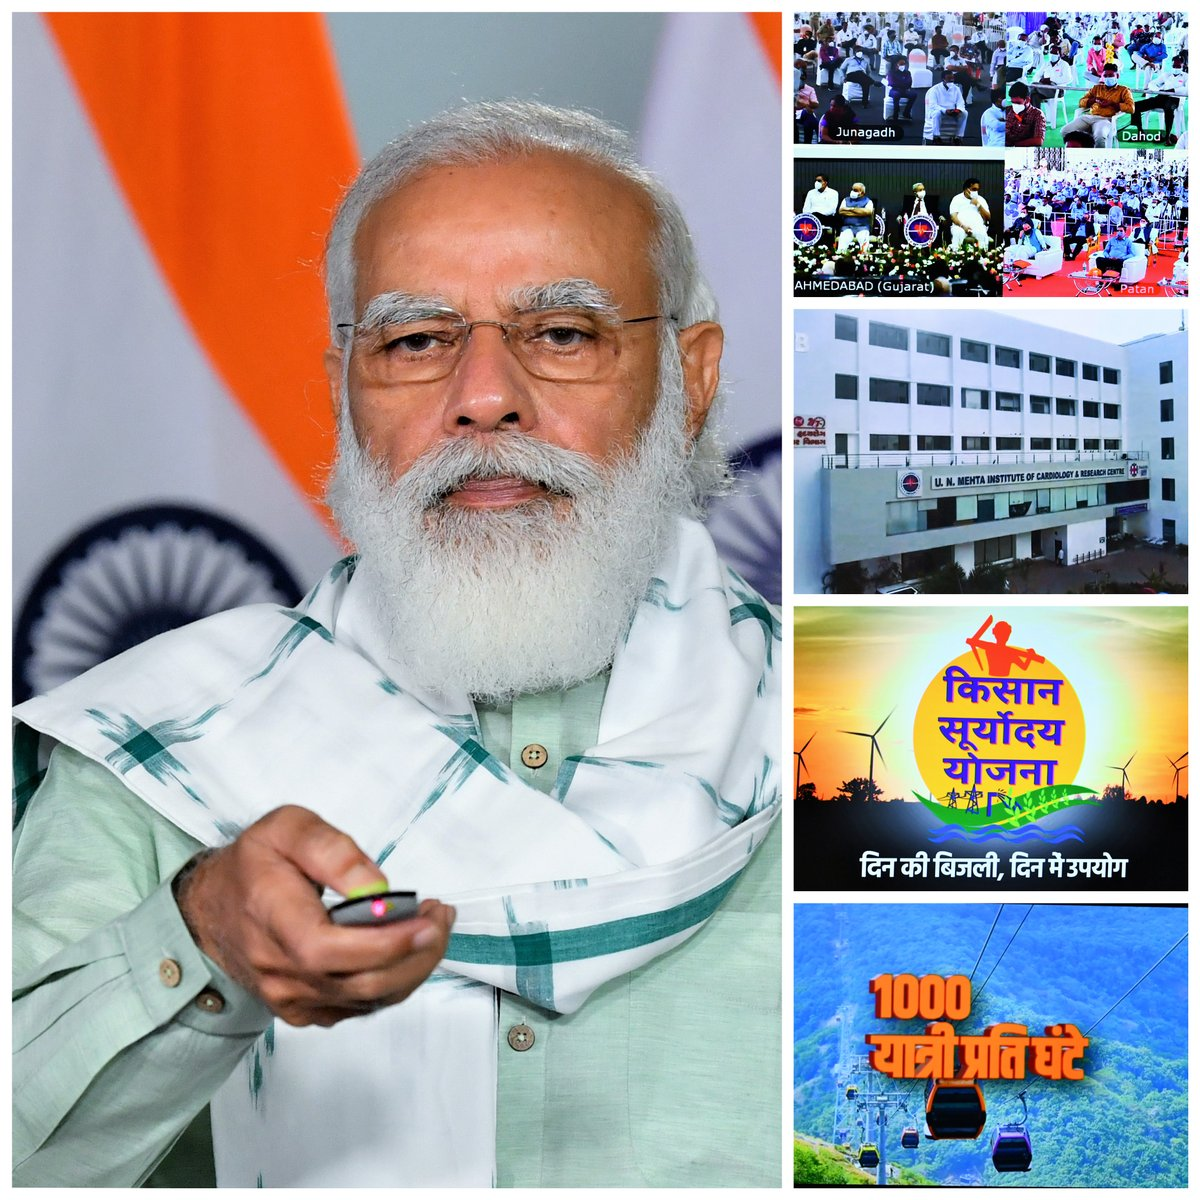 Prime Minister @narendramodi inaugurates three key projects in #Gujarat  ✅Kisan Suryoday Yojana for farmers of the State  ✅Paediatric Heart Hospital attached with U.N Mehta Institute of Cardiology and Research Centre  ✅Girnar ropeway  Details: https://t.co/Ih1e07yXFY https://t.co/IZXD0jR19k